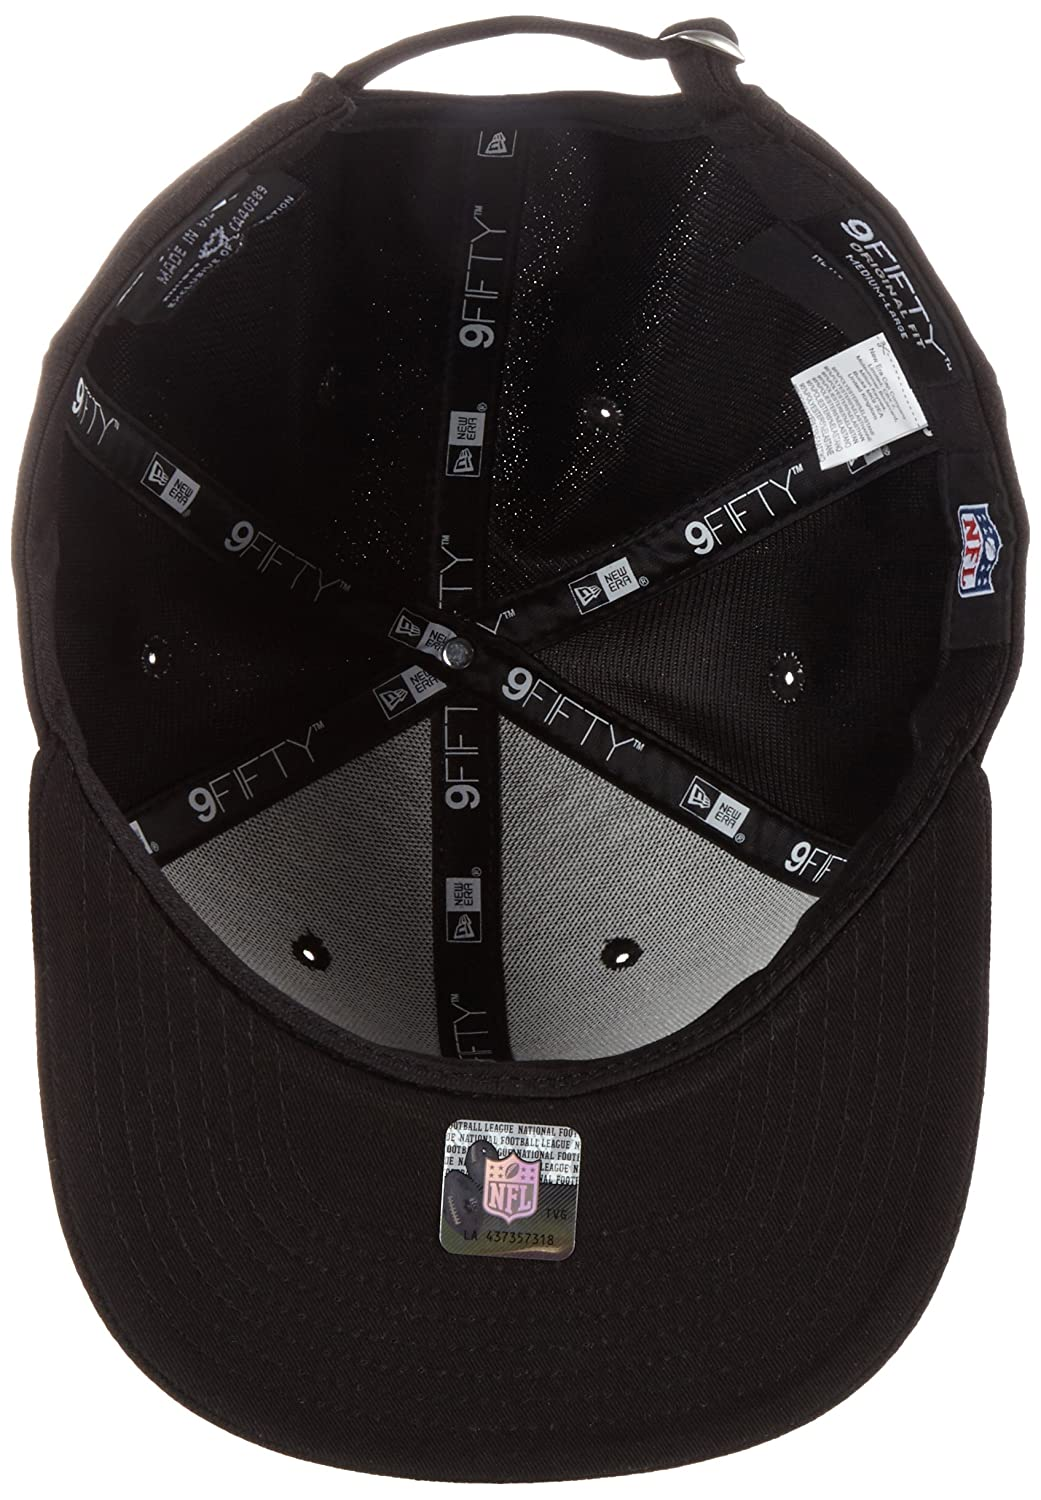 New Era 950 Original Fit Cap 461e3c6a7880